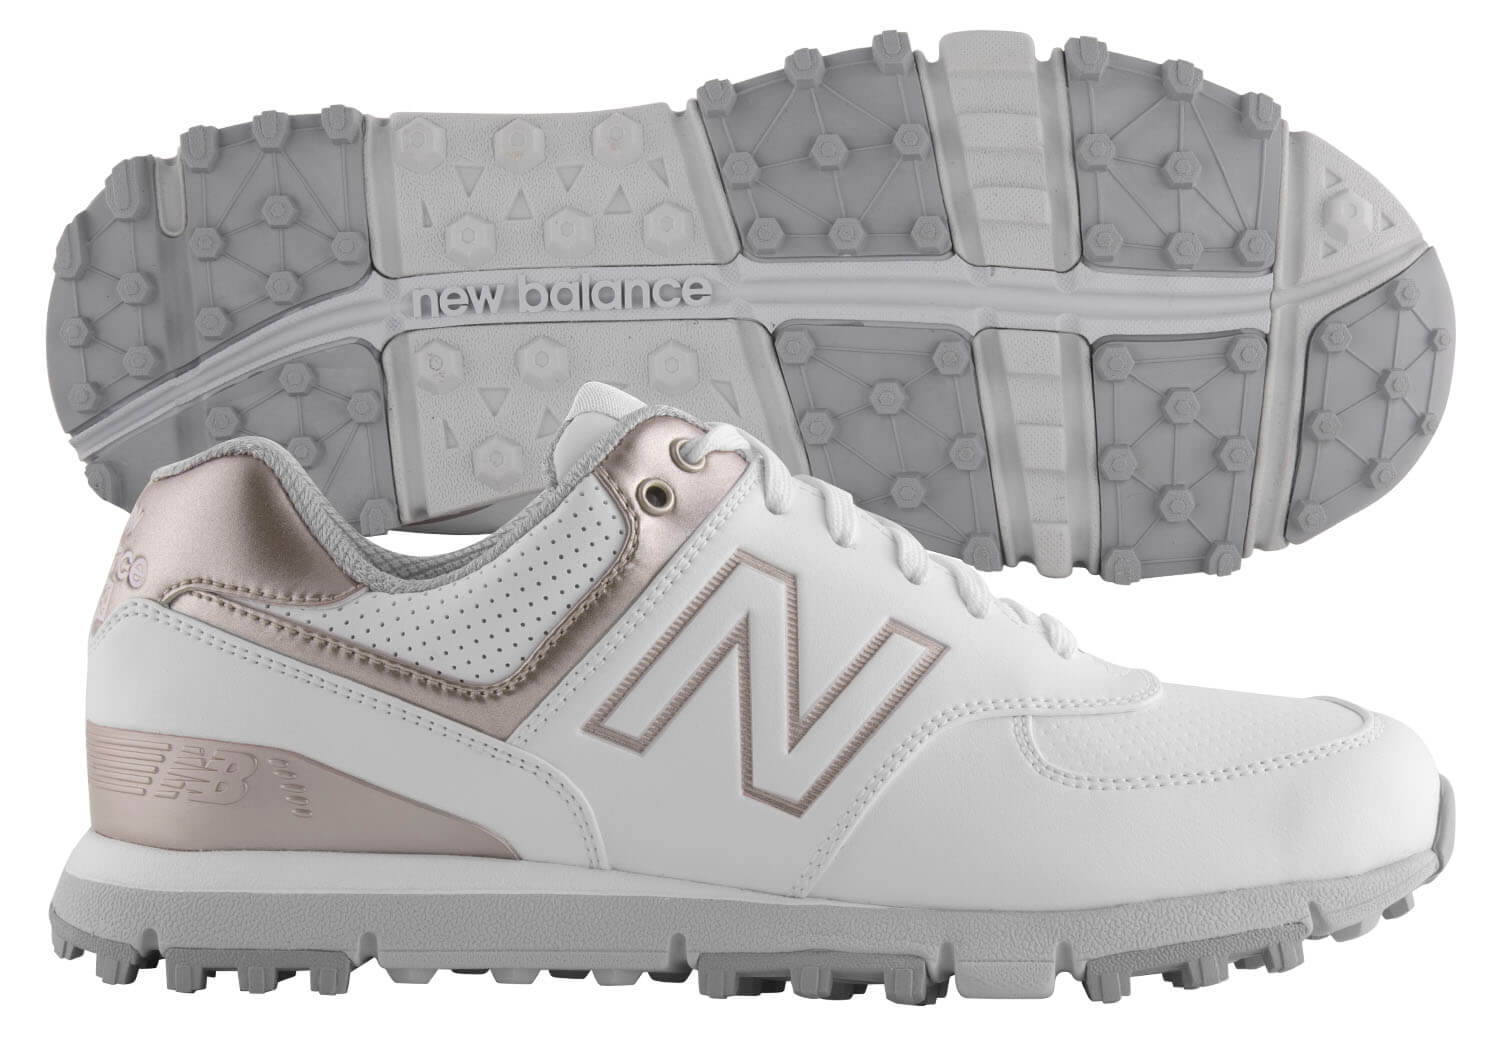 newest b75bb 37423 Details about New Balance Women's 574 SL Golf Shoes NBGW574WRG White/Rose  Gold Ladies New